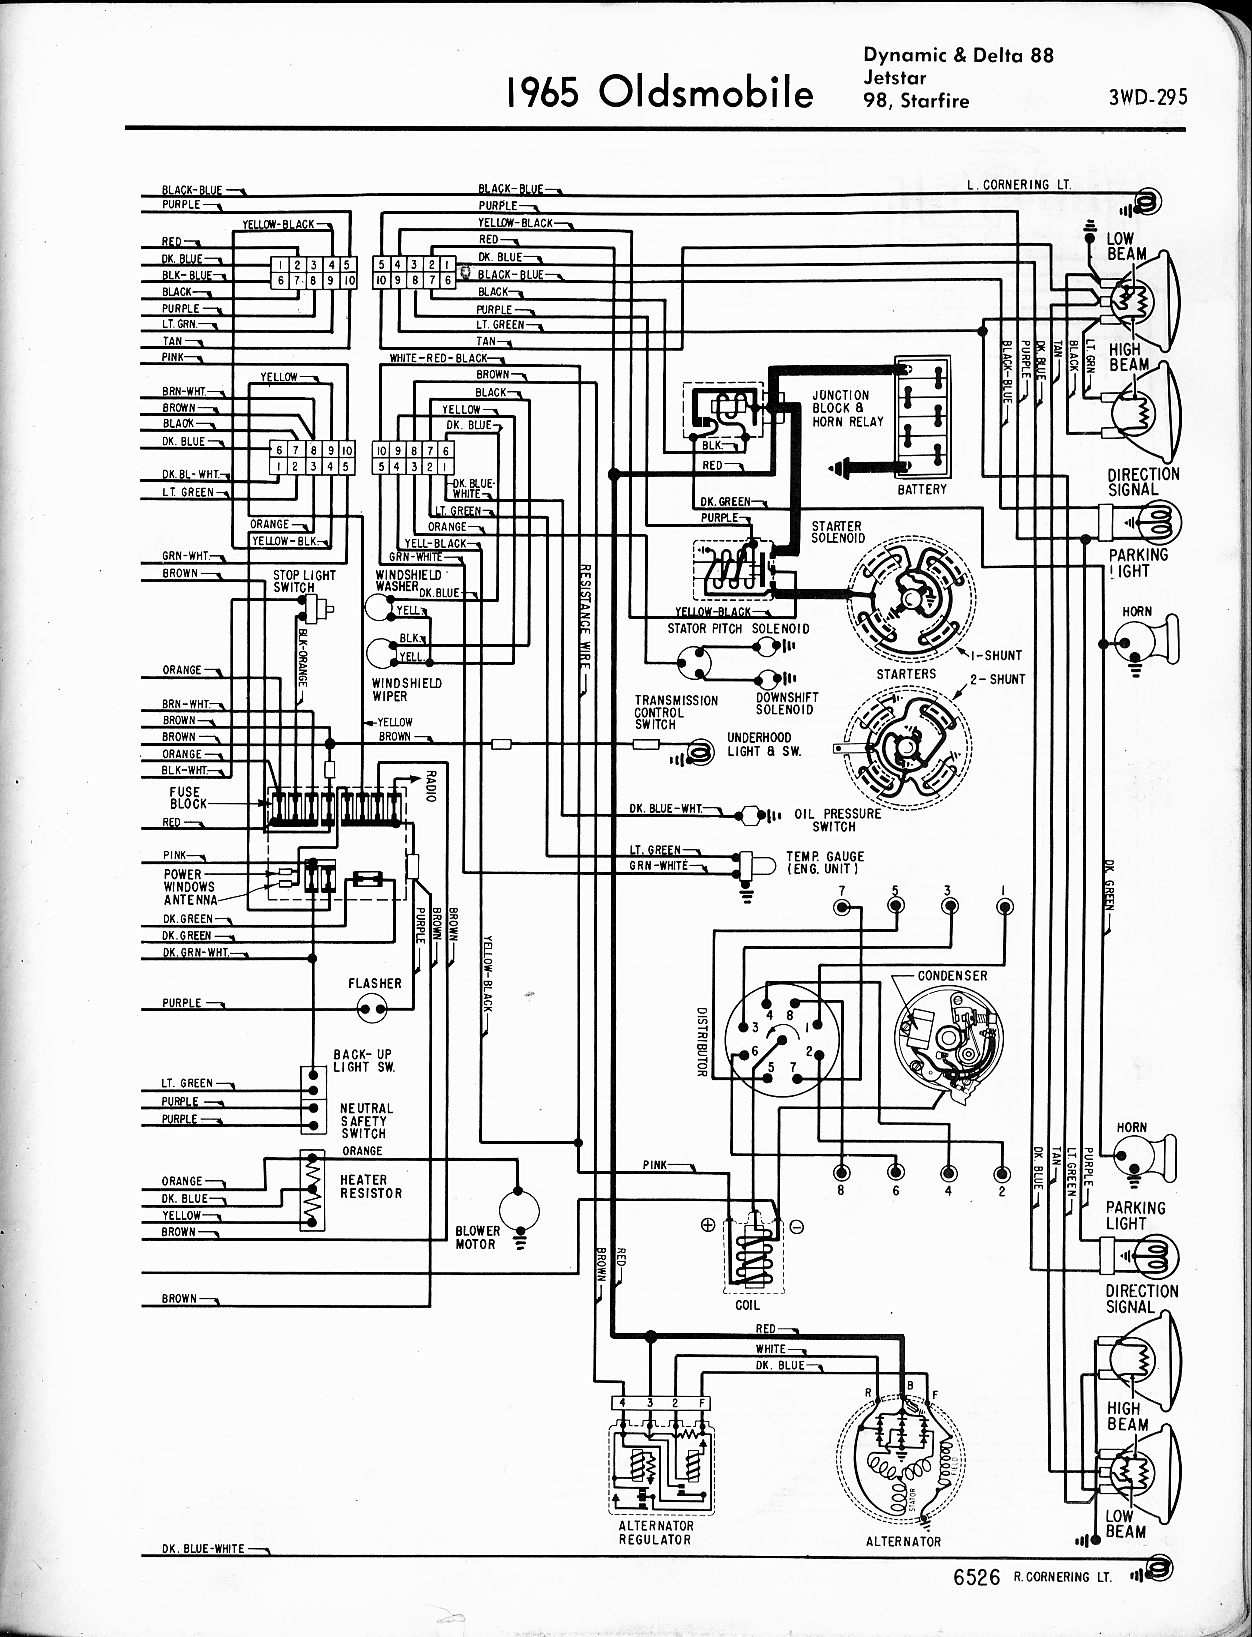 oldsmobile wiring diagrams the old car manual project back to the old car manual project home